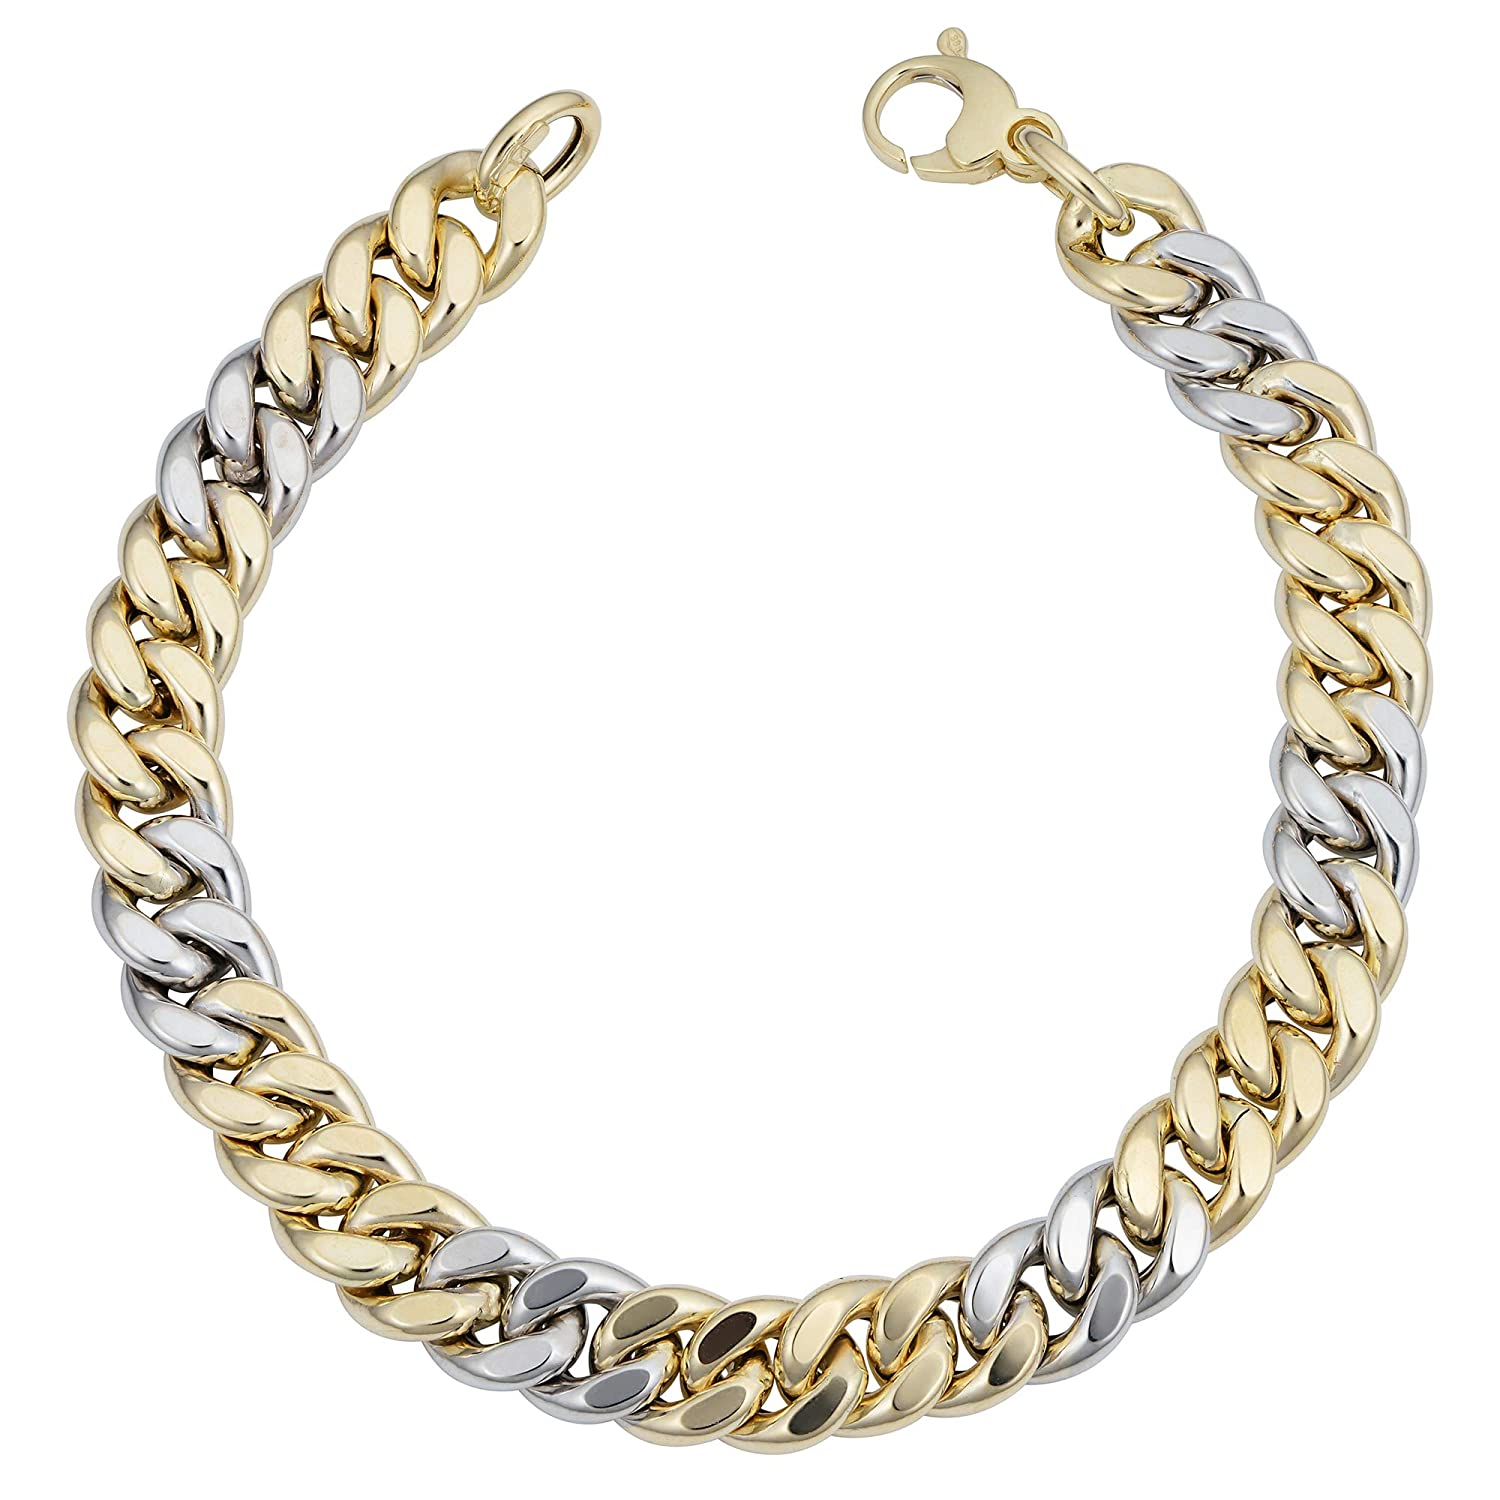 83431f3f2d1ca Amazon.com: 14k Yellow And White Gold Miami Cuban Curb Hollow Link ...